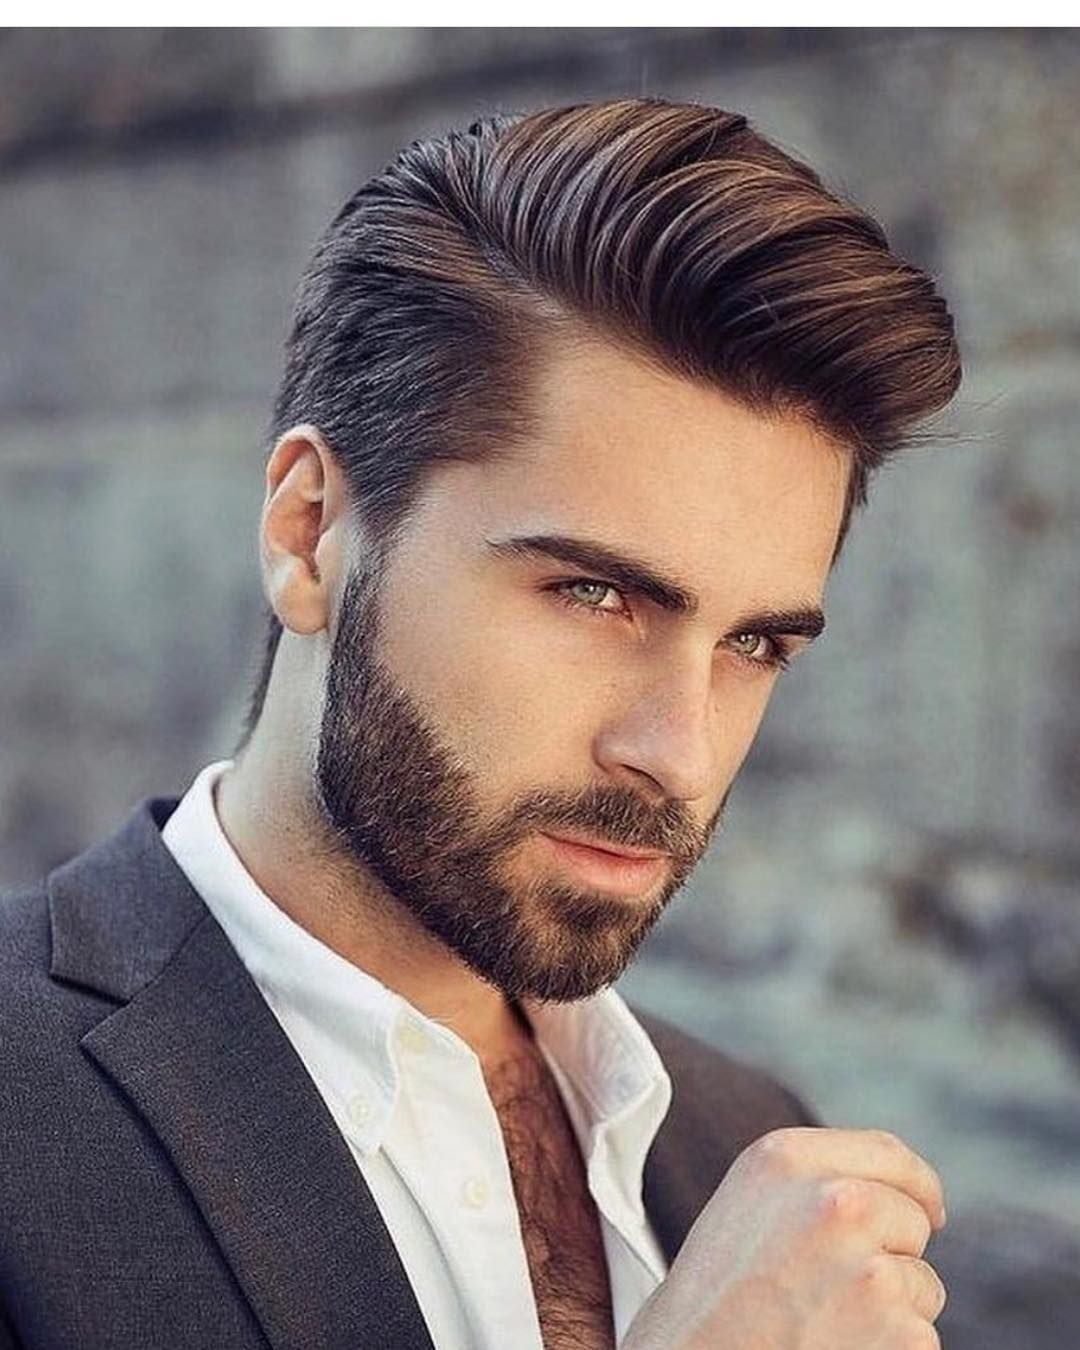 Hairstyles Boys Dubai Older Mens Hairstyles Medium Hair Styles Hipster Haircut